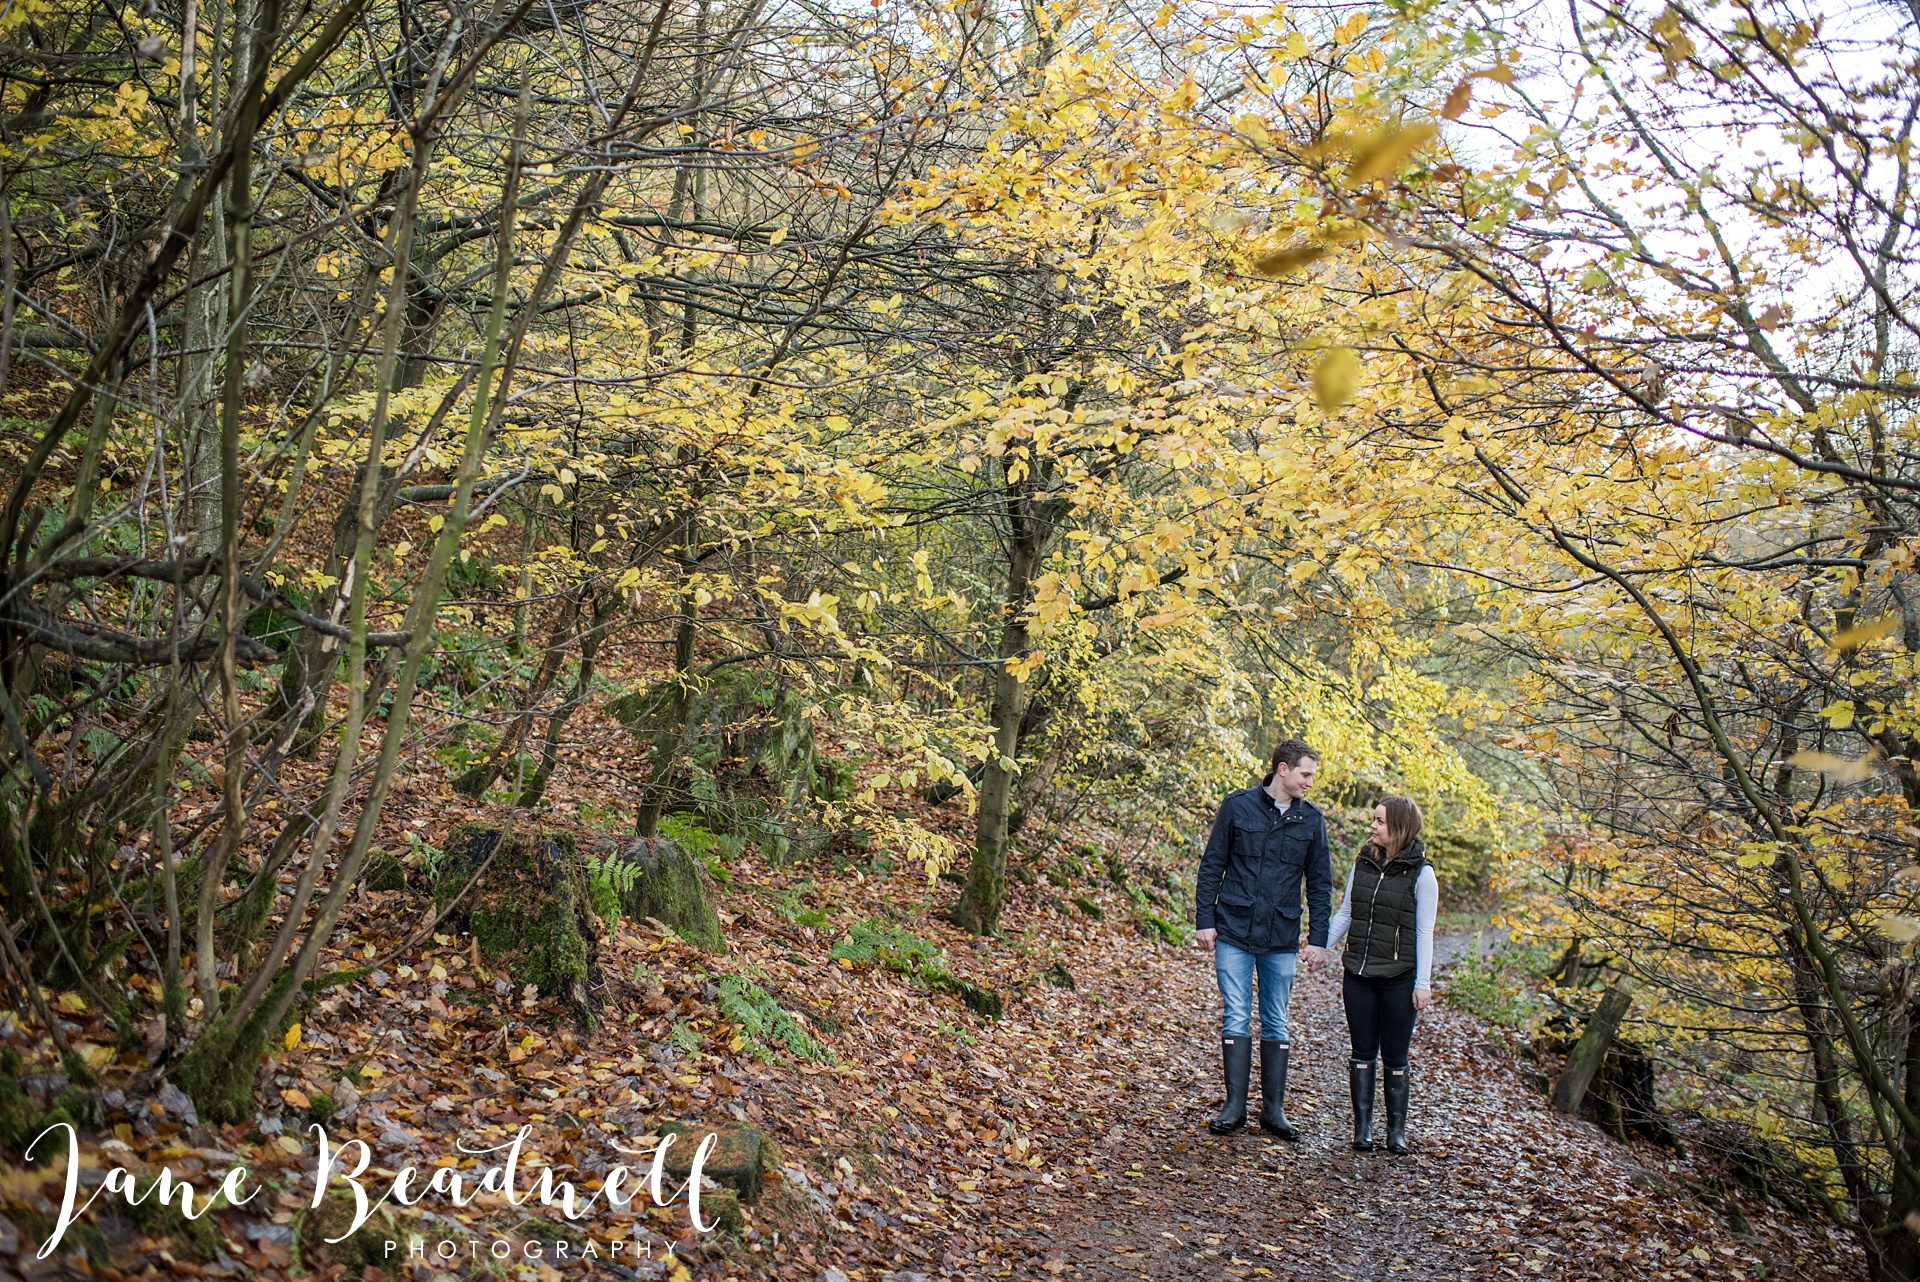 engagement-shoot-yorkshire-wedding-photographer-jane-beadnell-photography-uk-and-destination-wedding-photographer-engagement-shoot_0011